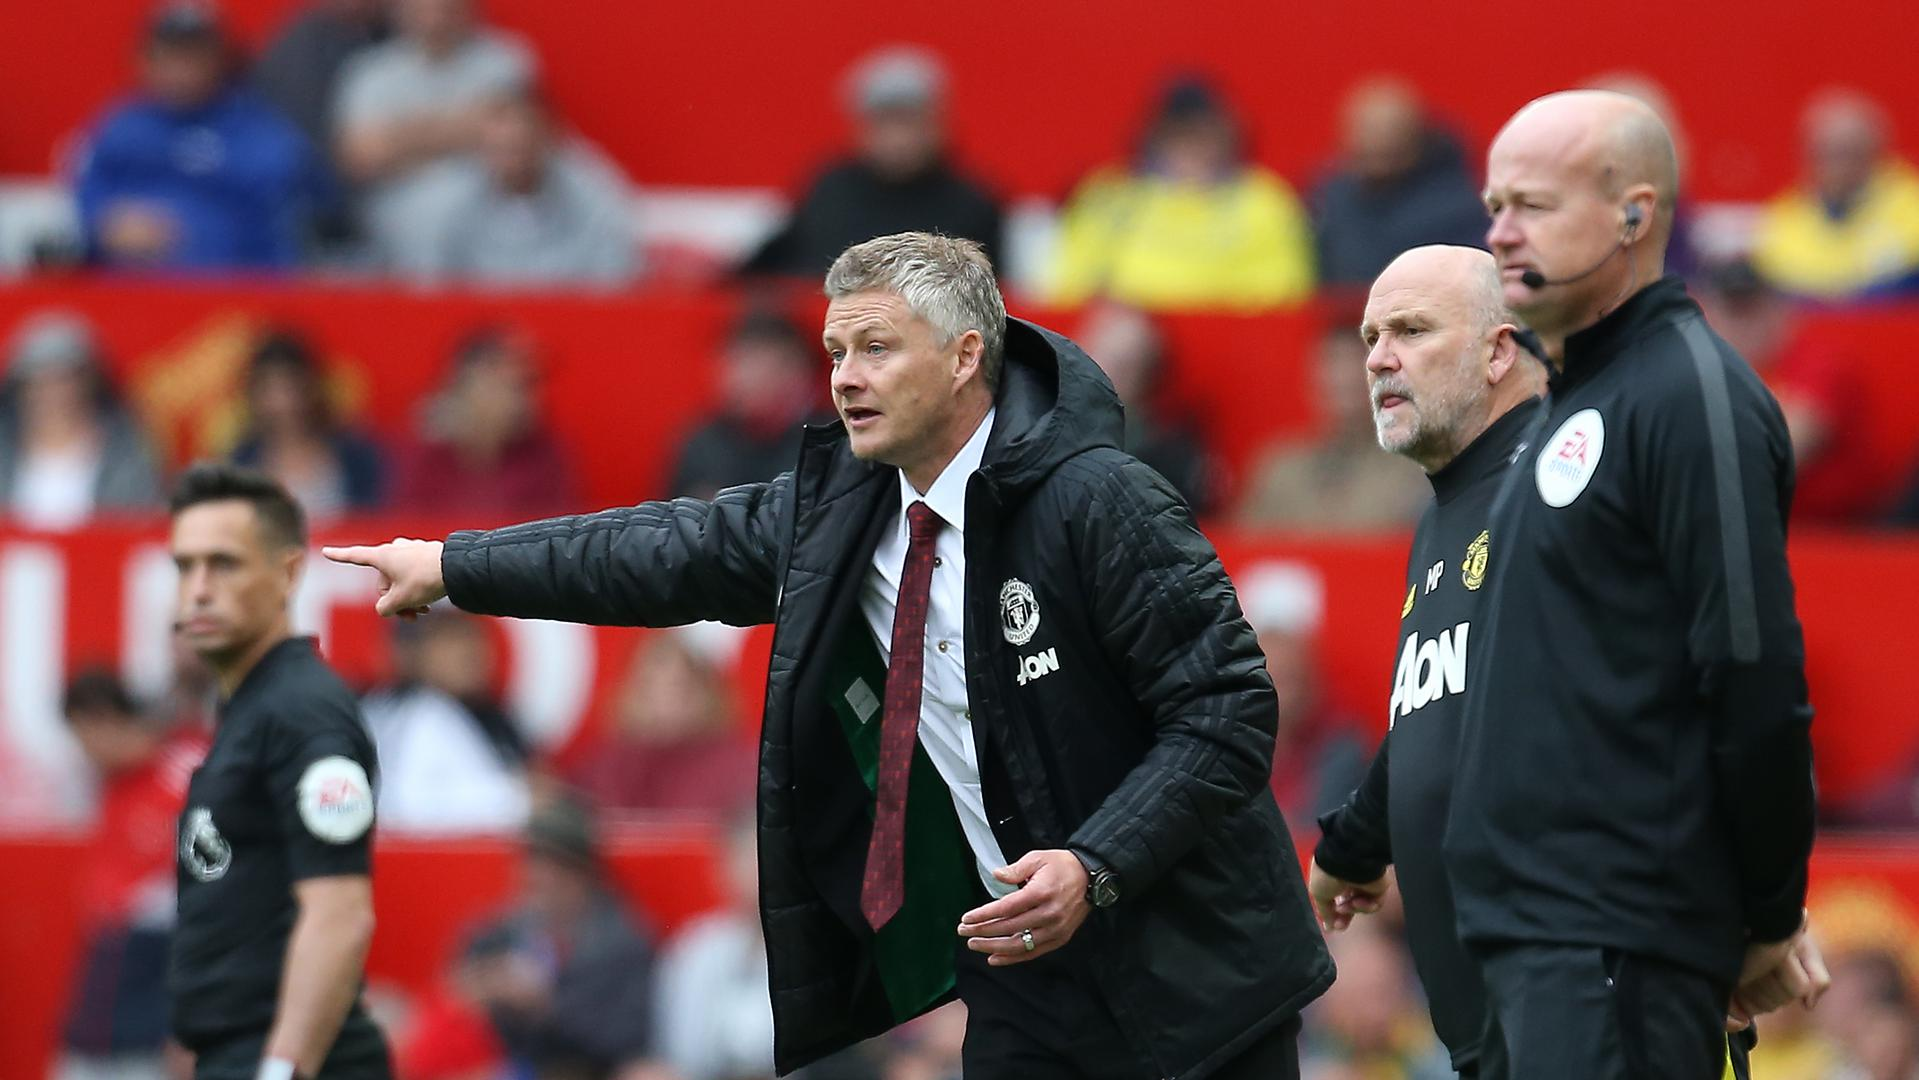 Ole Gunnar Solskjaer 。。shouts instructions to his team at Old Trafford during the Chelsea match